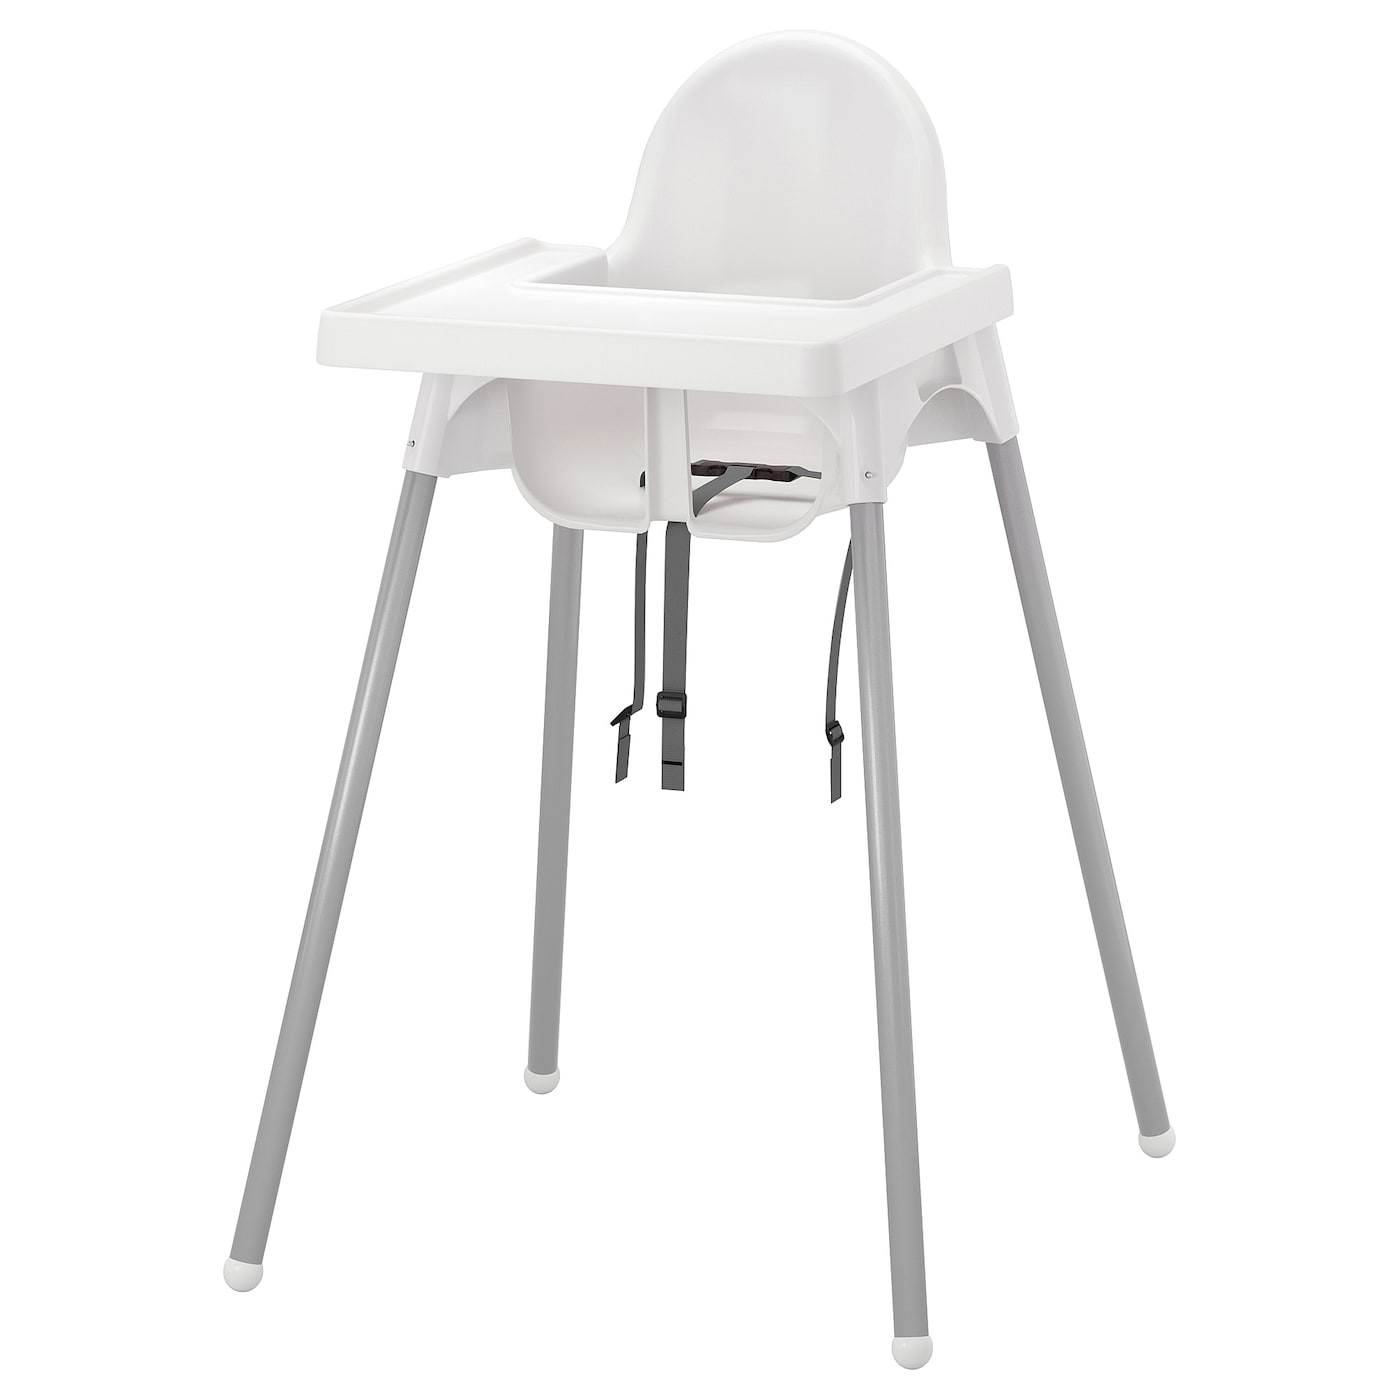 ANTILOP High chair with tray - white/silver color